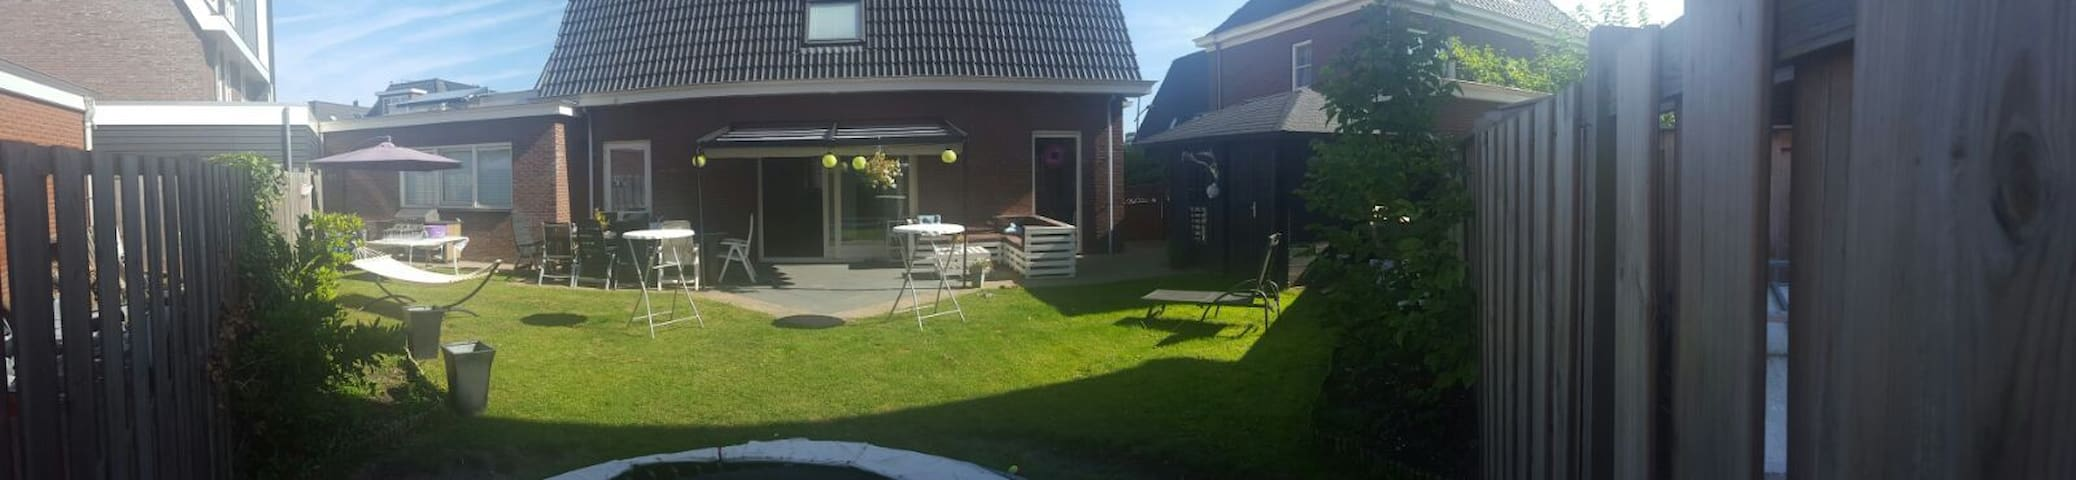 Wonderful house with sunny garden near Amsterdam - Assendelft - Villa